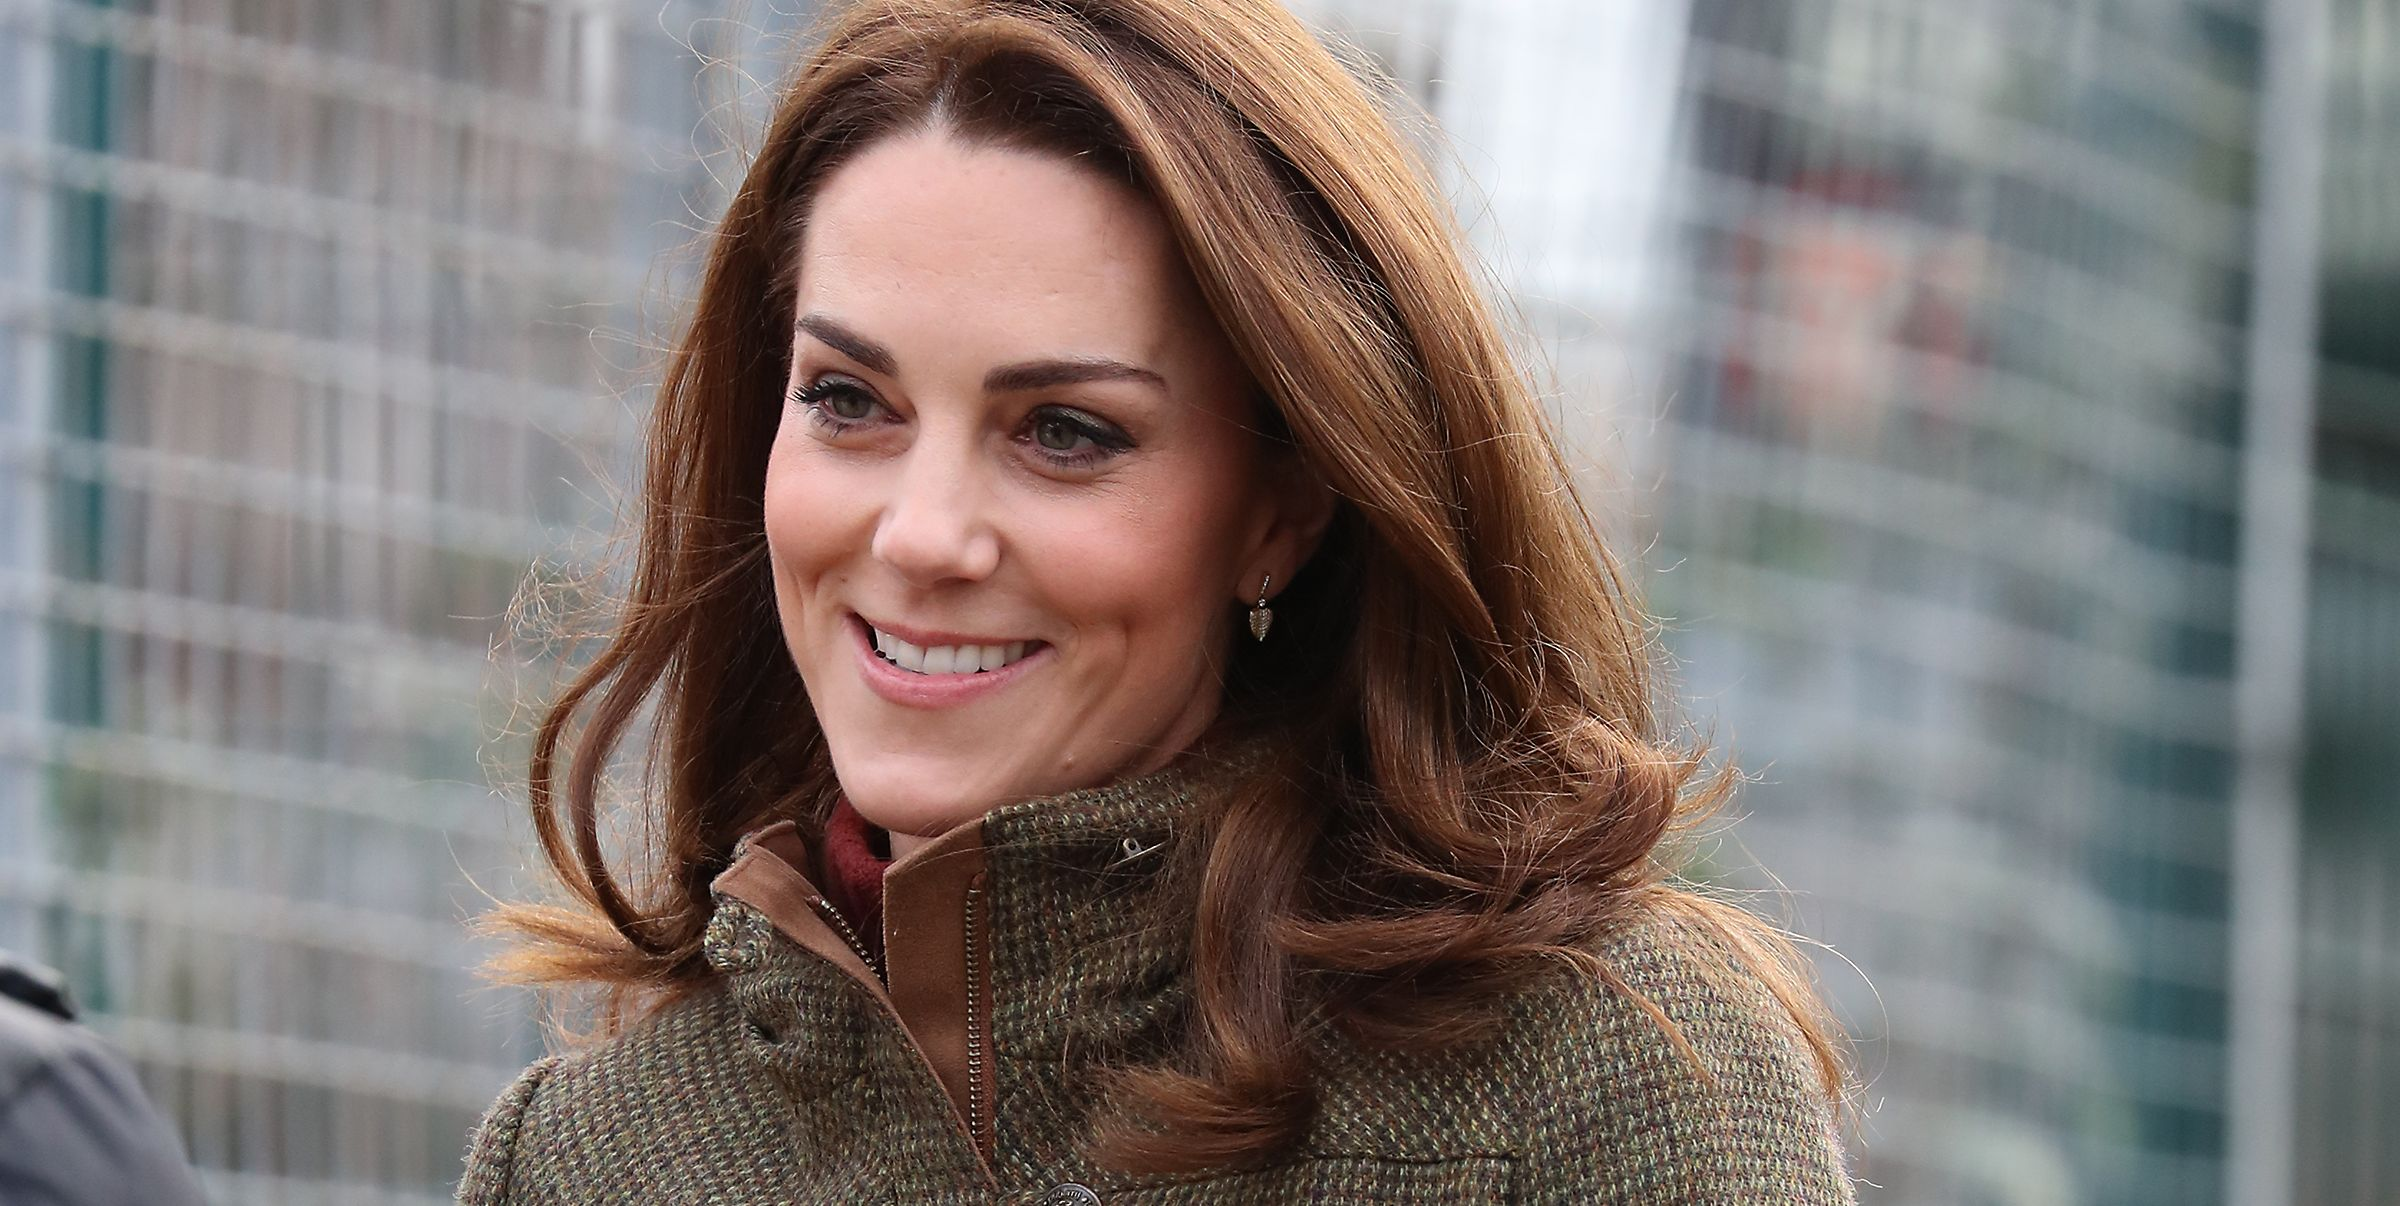 Kate Middleton Rocks Skinny Jeans and Combat Boots for a Community Garden Appearance